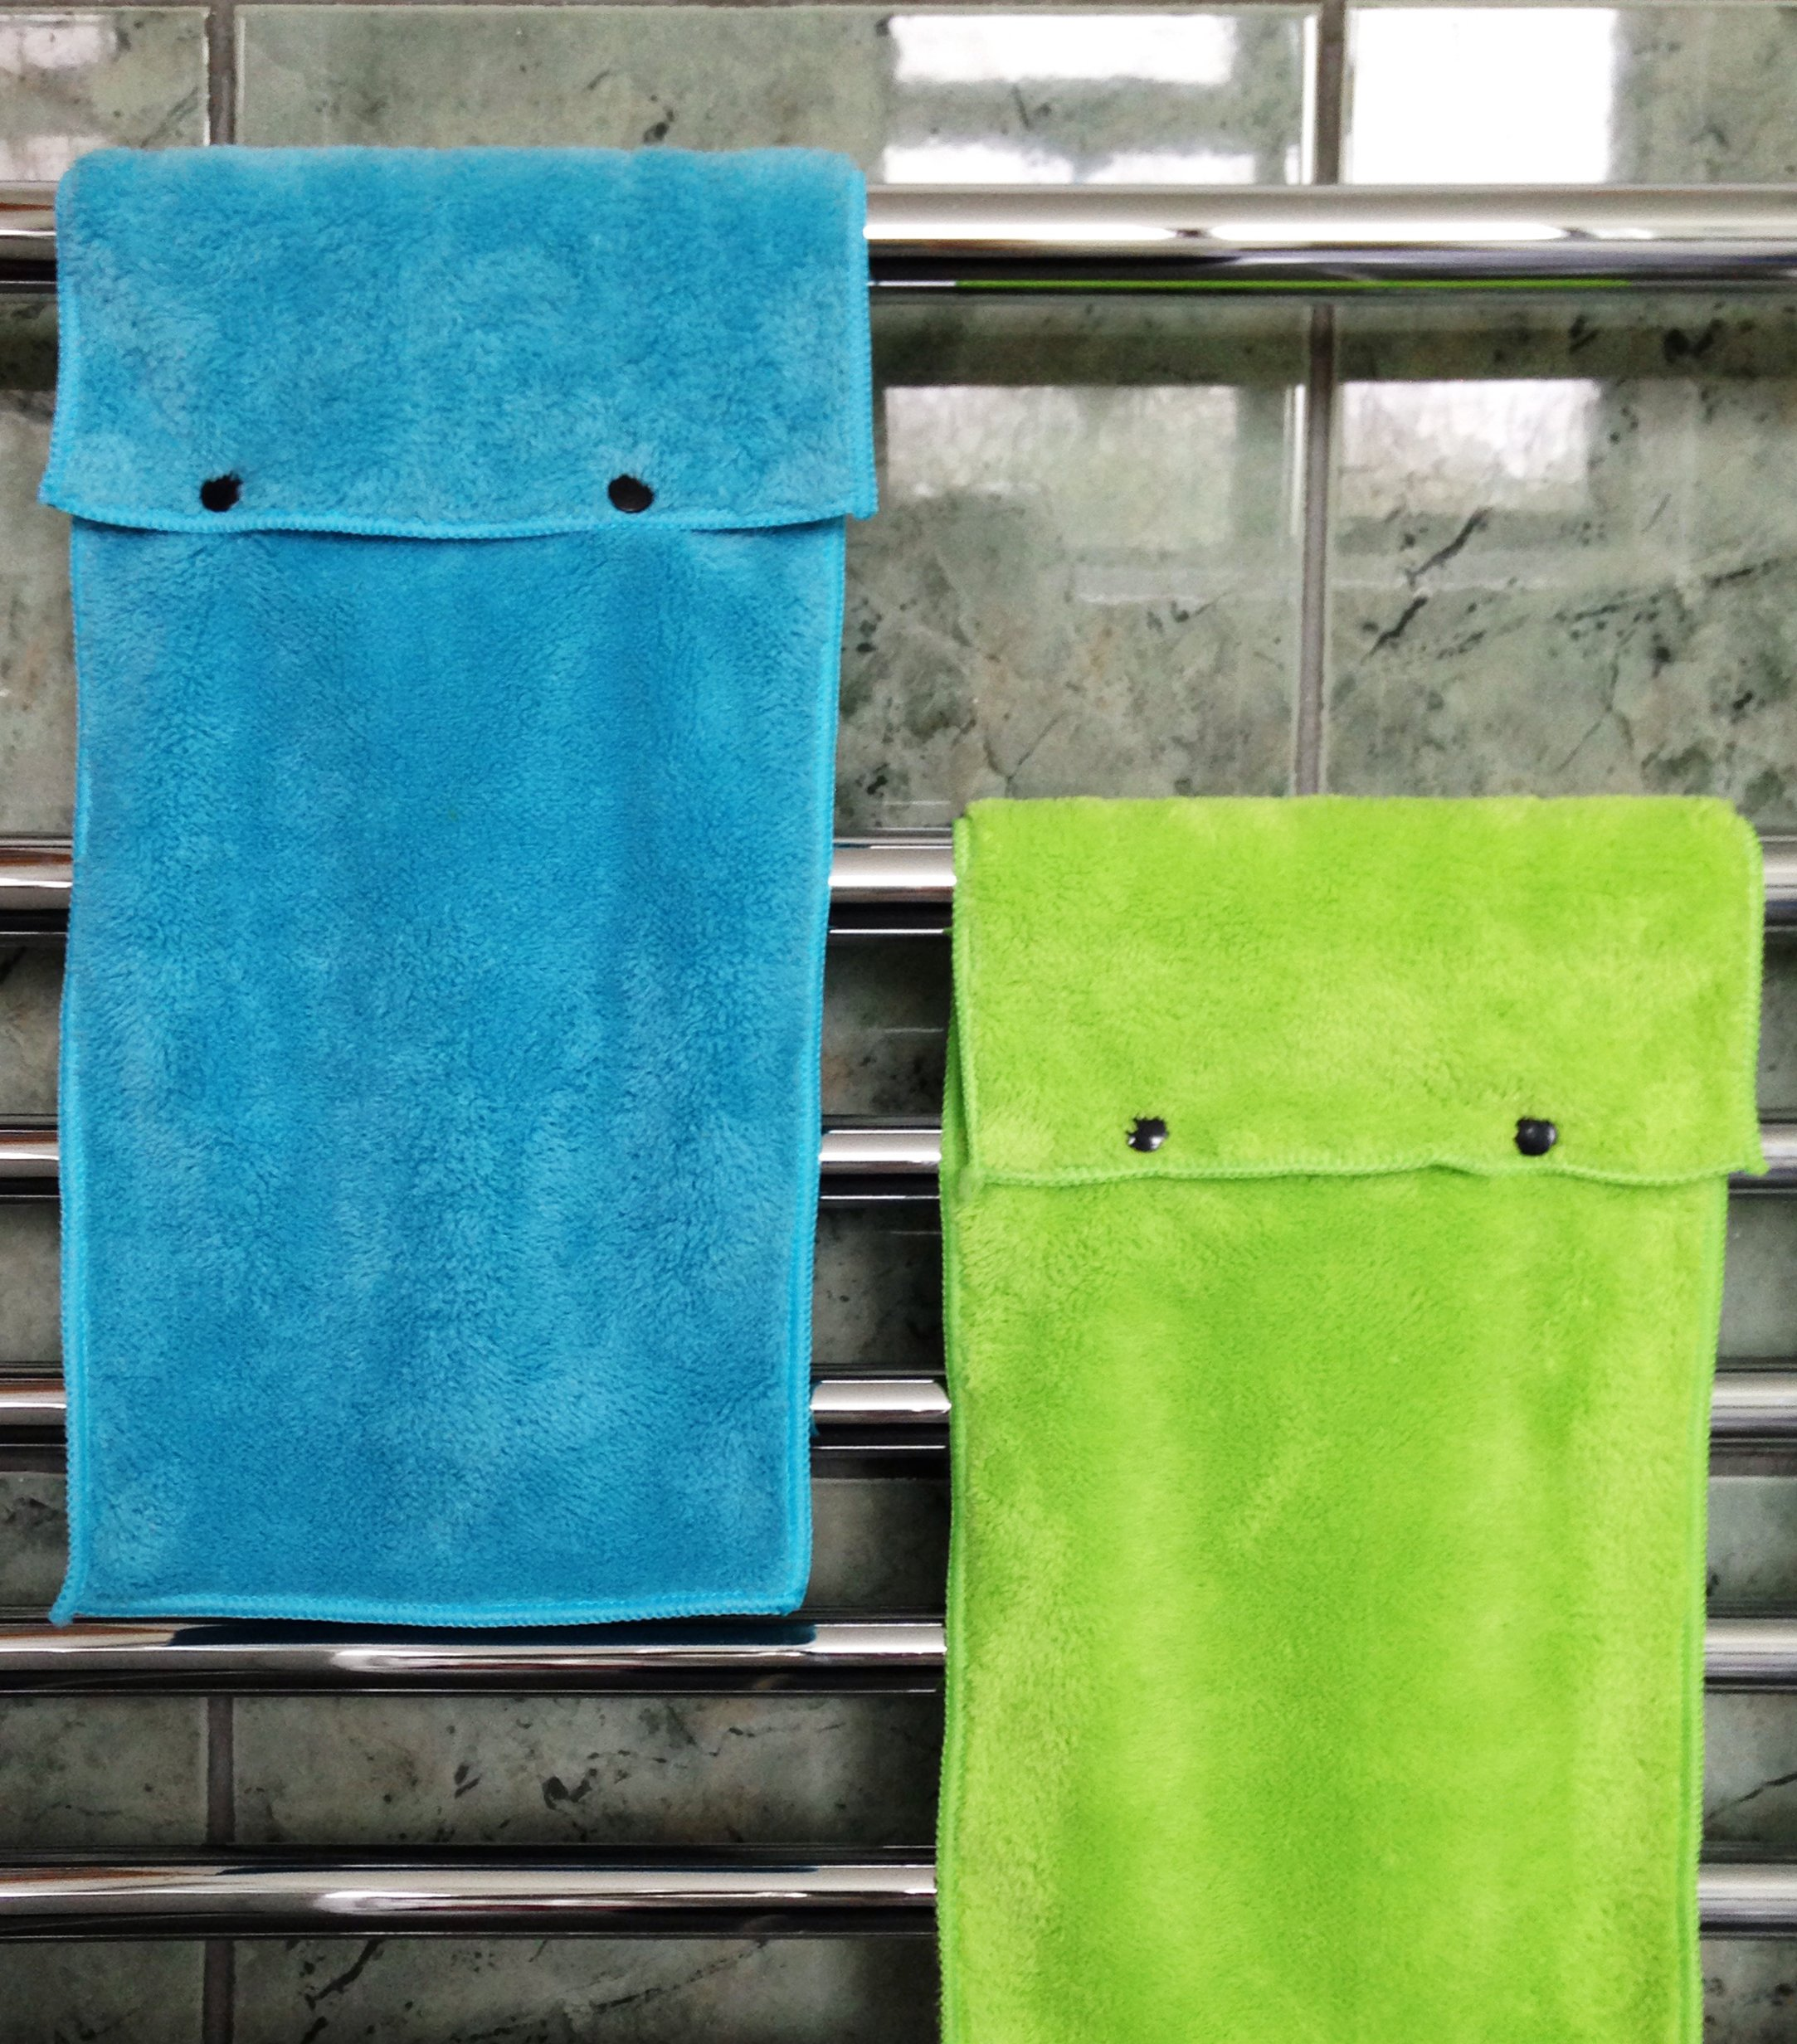 Hanging Hand Towels with Snap Fastener - Set of 3 Lime Green, Hanging Kitchen Hand Towels, Hanging Bathroom Hand Towels, Soft, Quick Drying, Microfiber Fluffy Fingertip Towels by Taylors of Kent (Image #7)